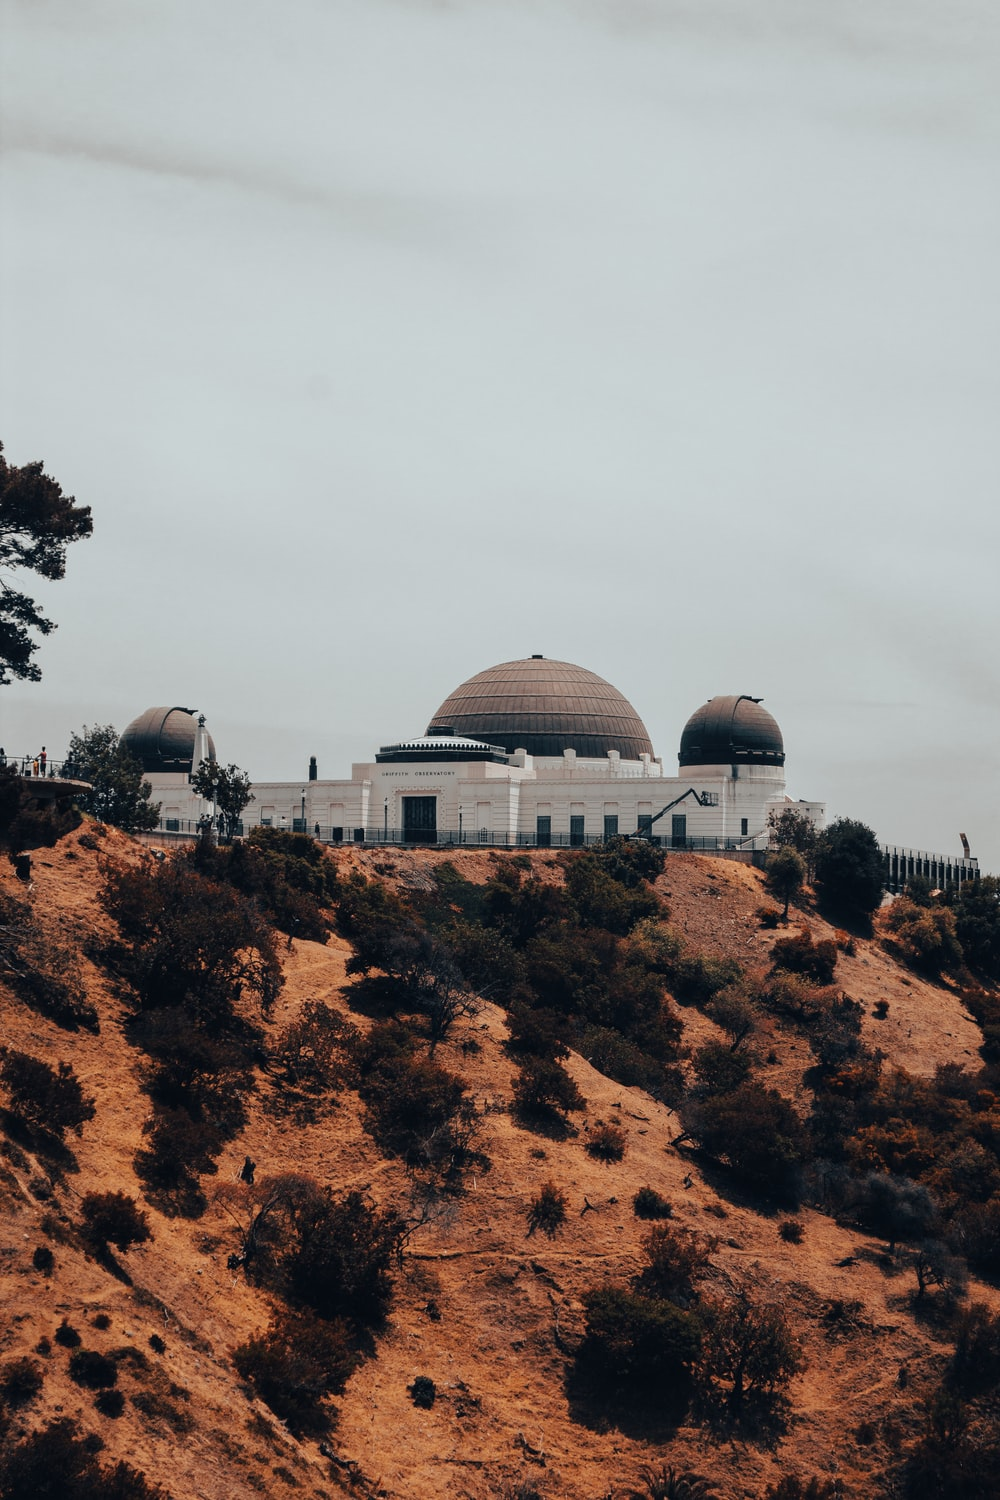 white dome building on brown rock mountain during daytime